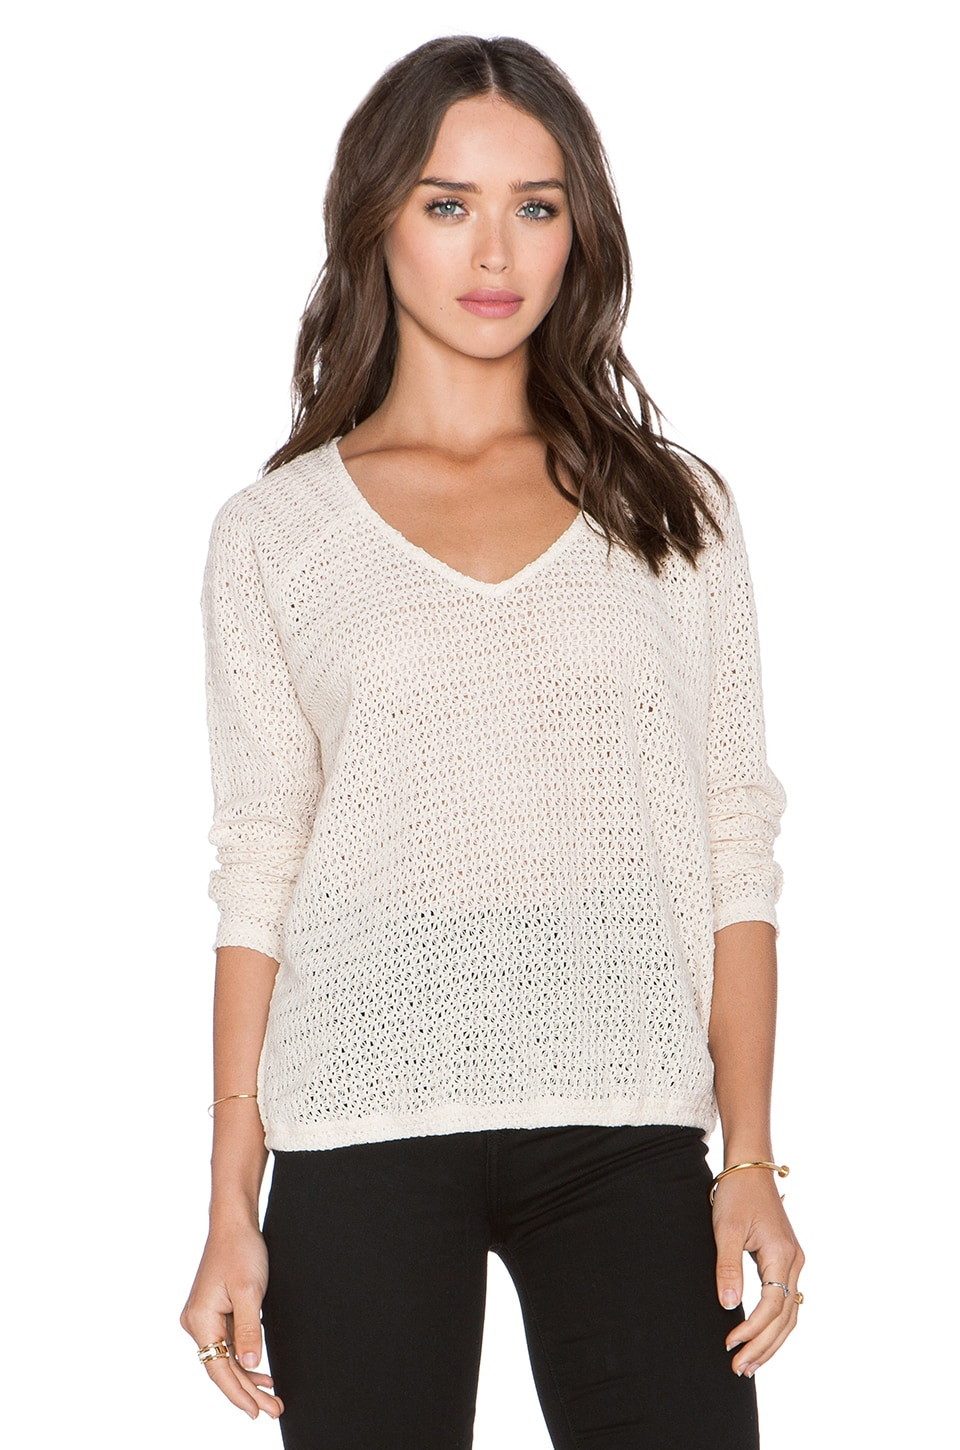 Sanctuary Beach Sweater in Wicker